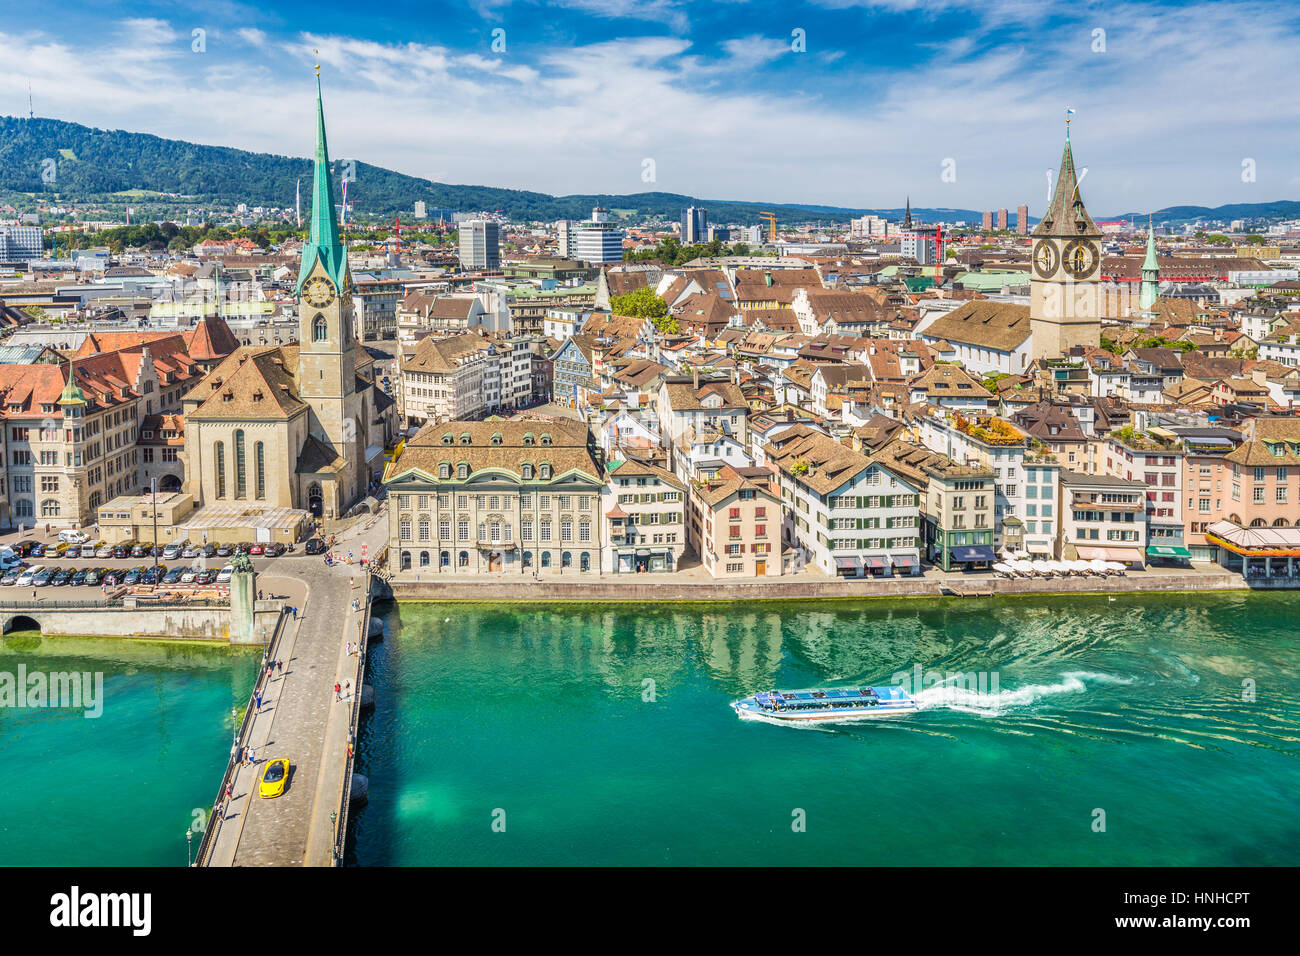 Aerial view of Zürich city center with famous Fraumünster and Sankt Peter Churches and river Limmat at - Stock Image